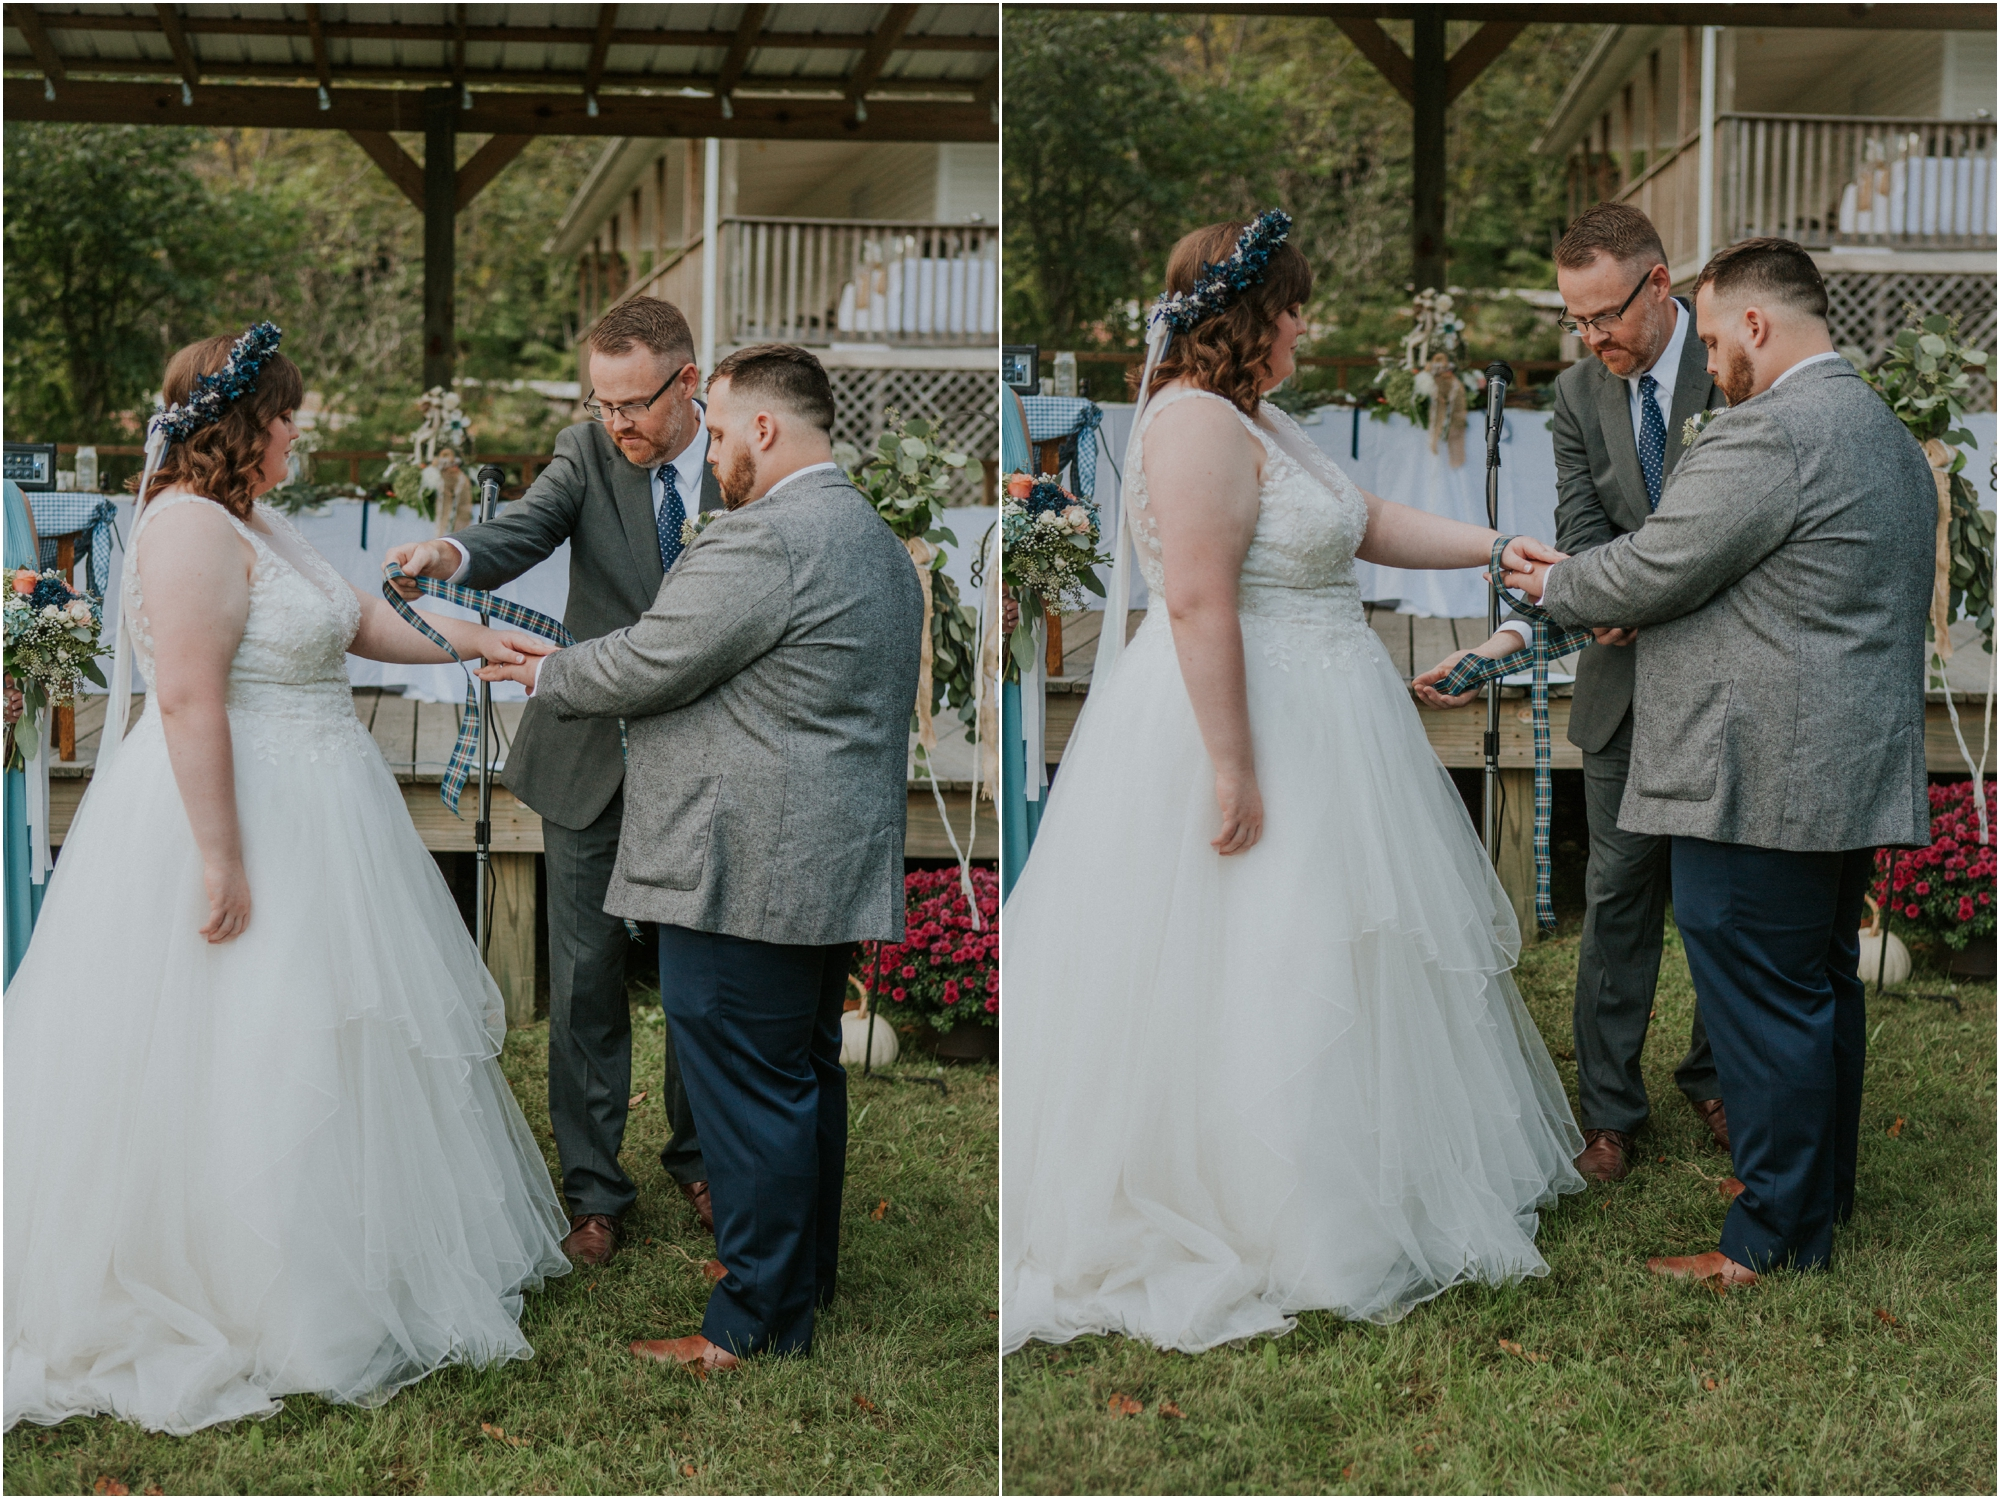 caryville-robbins-middle-tennessee-intimate-cozy-fall-navy-rustic-backyard-wedding_0085.jpg